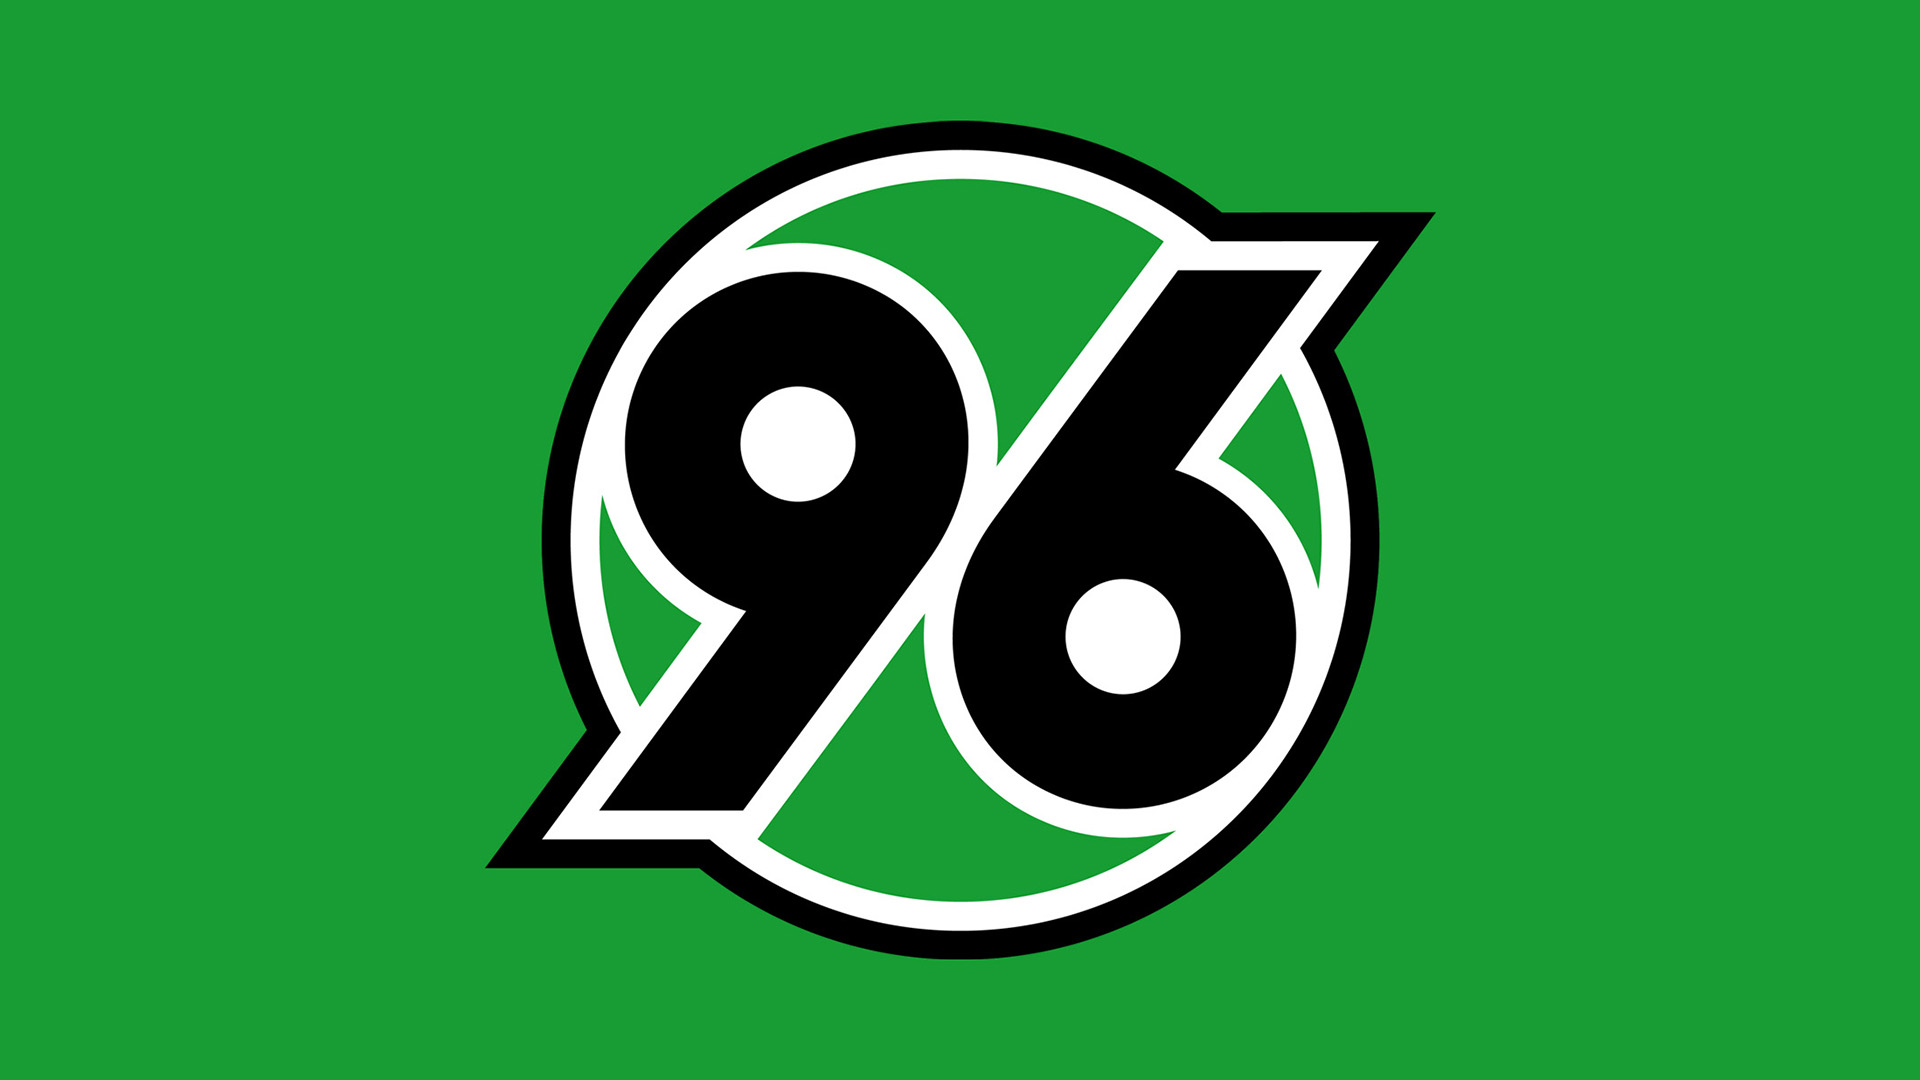 96 hannover